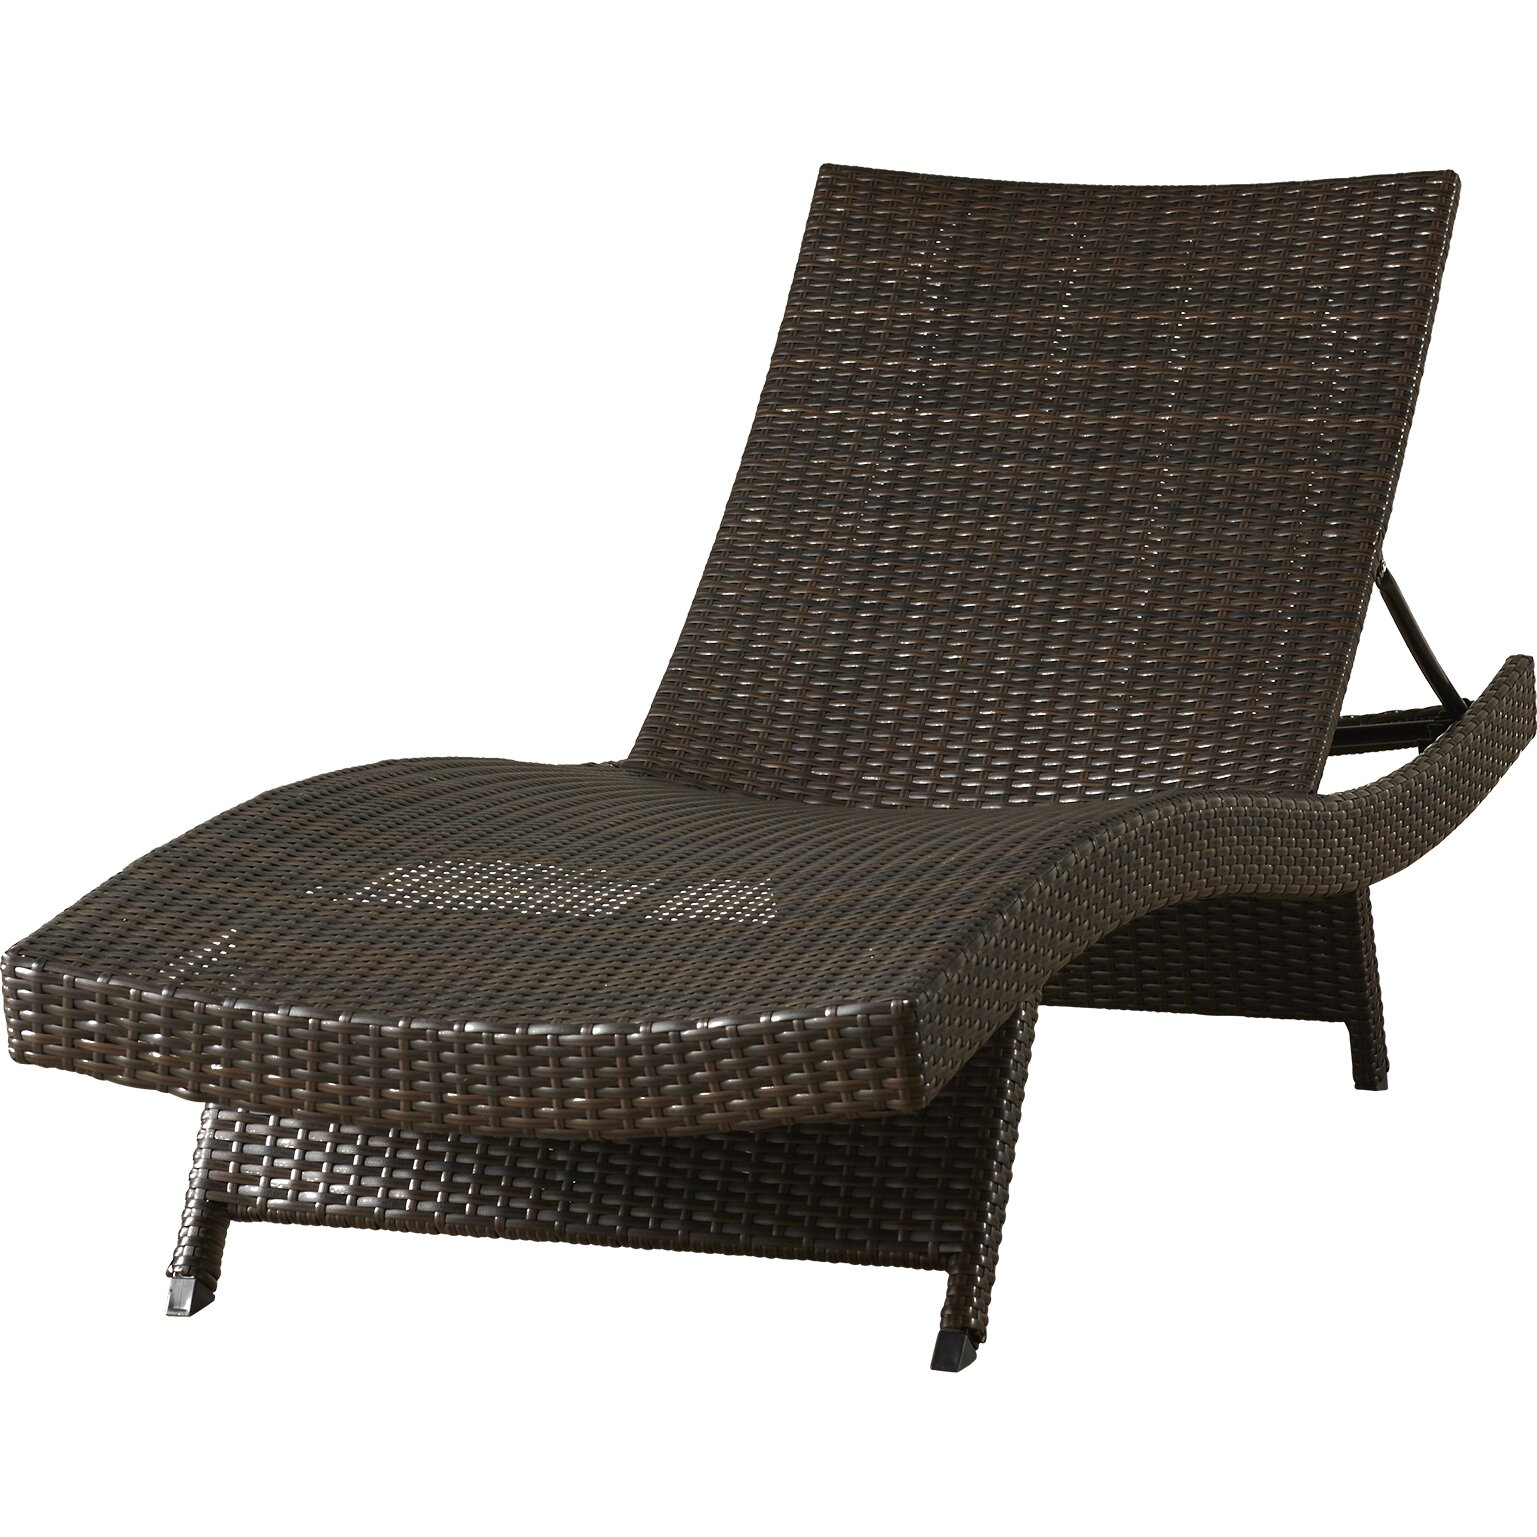 Brayden Studio Caddell Adjustable Chaise Lounge with Arms ...